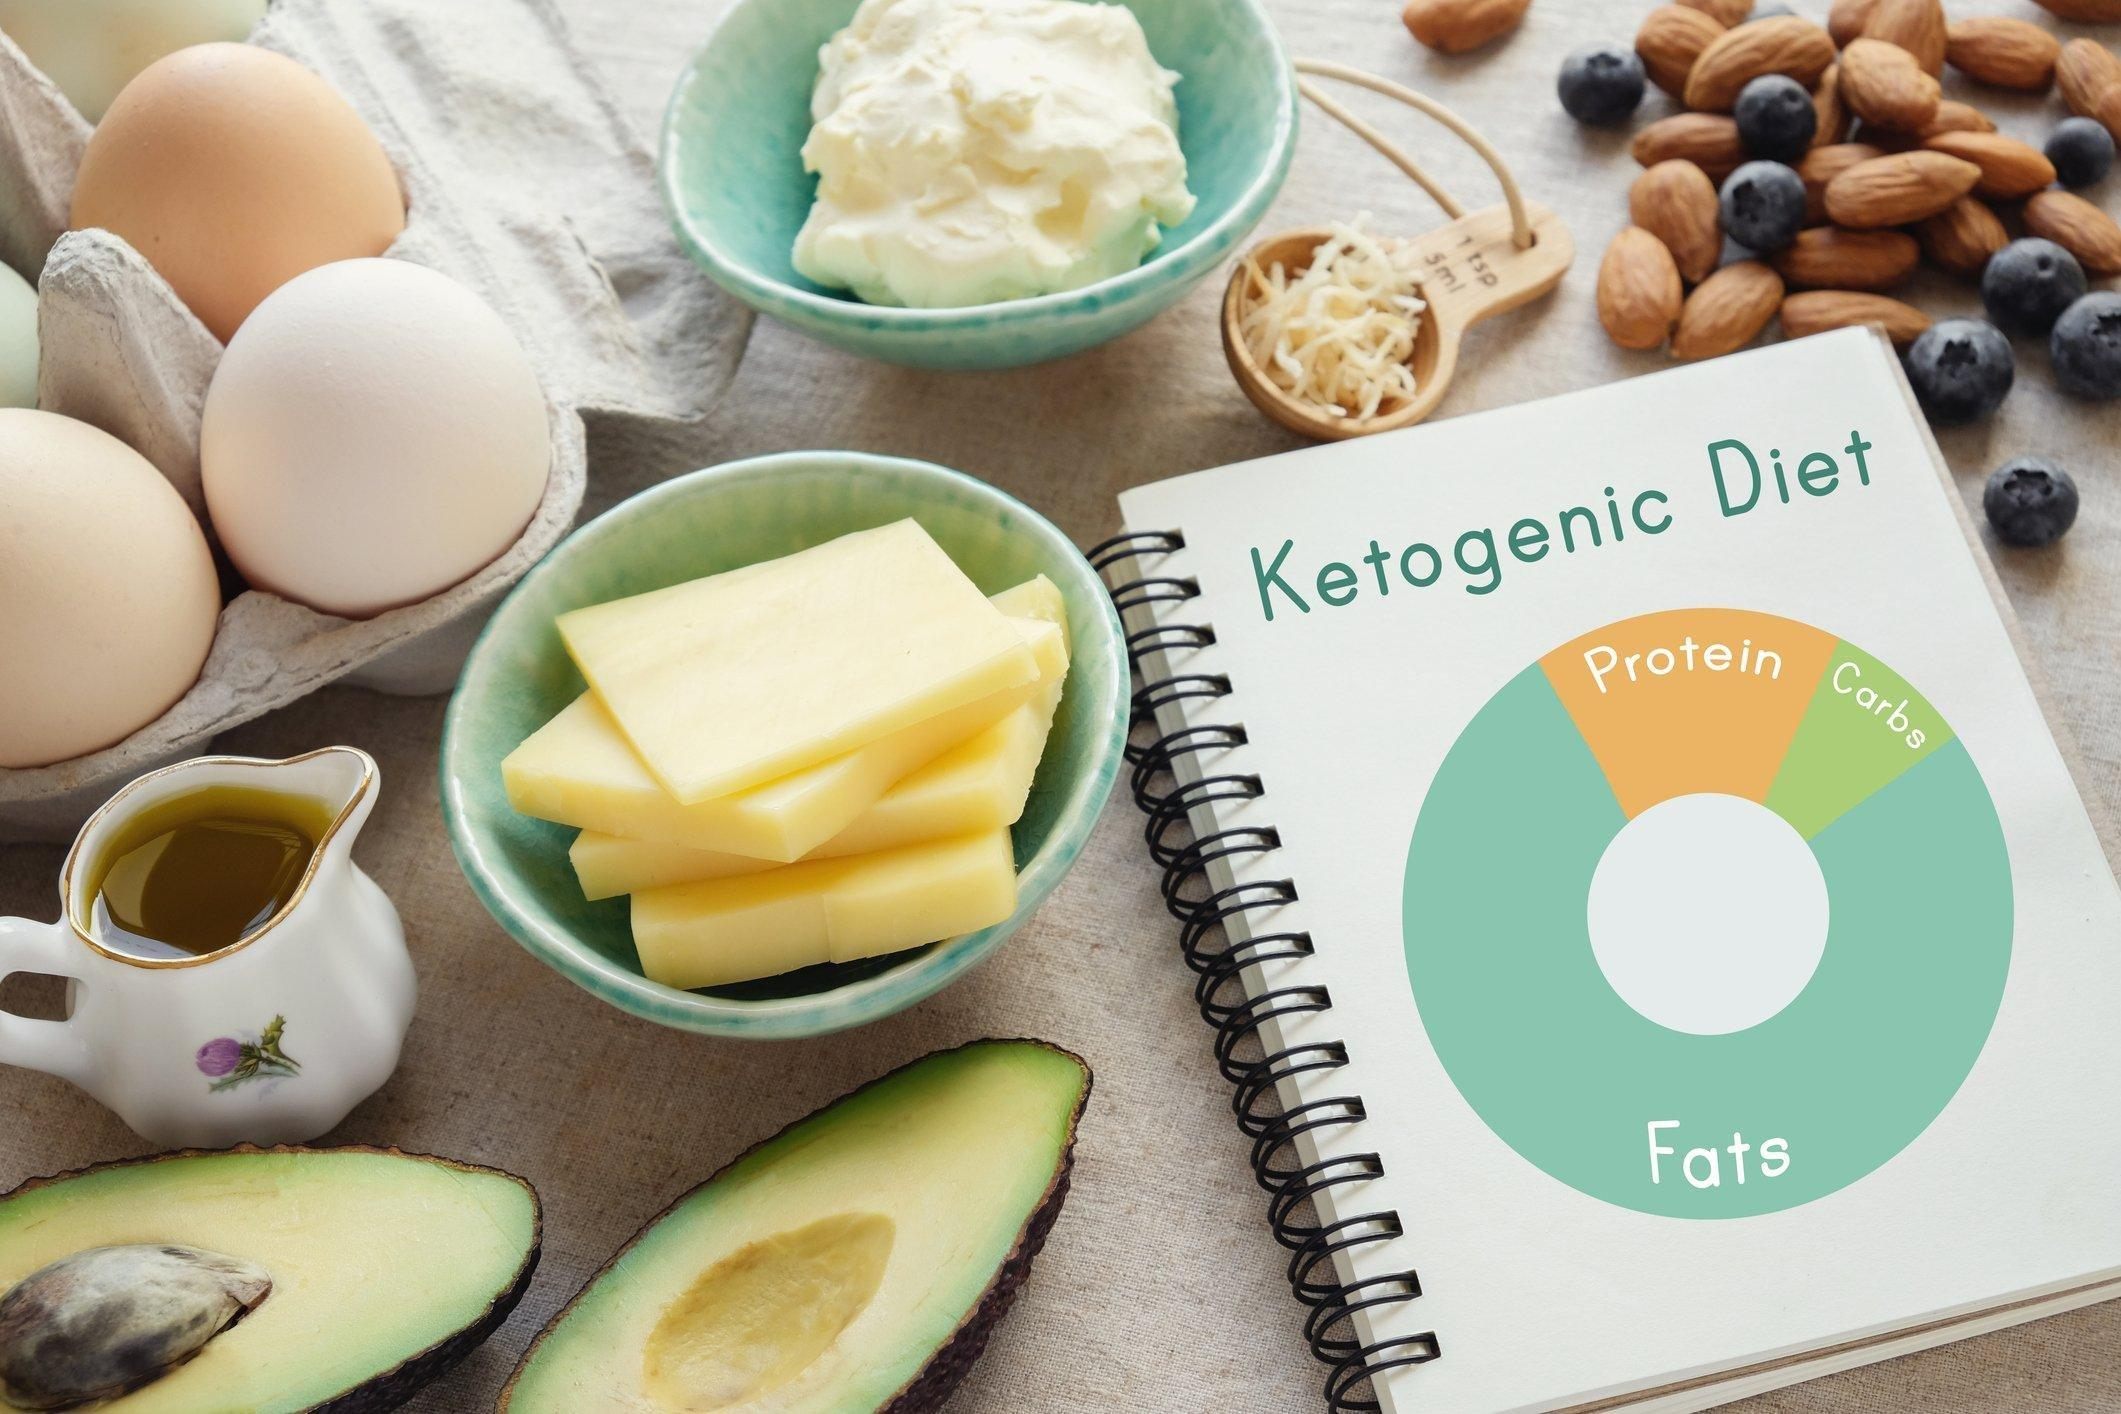 Is A Keto Diet Good For Diabetes?